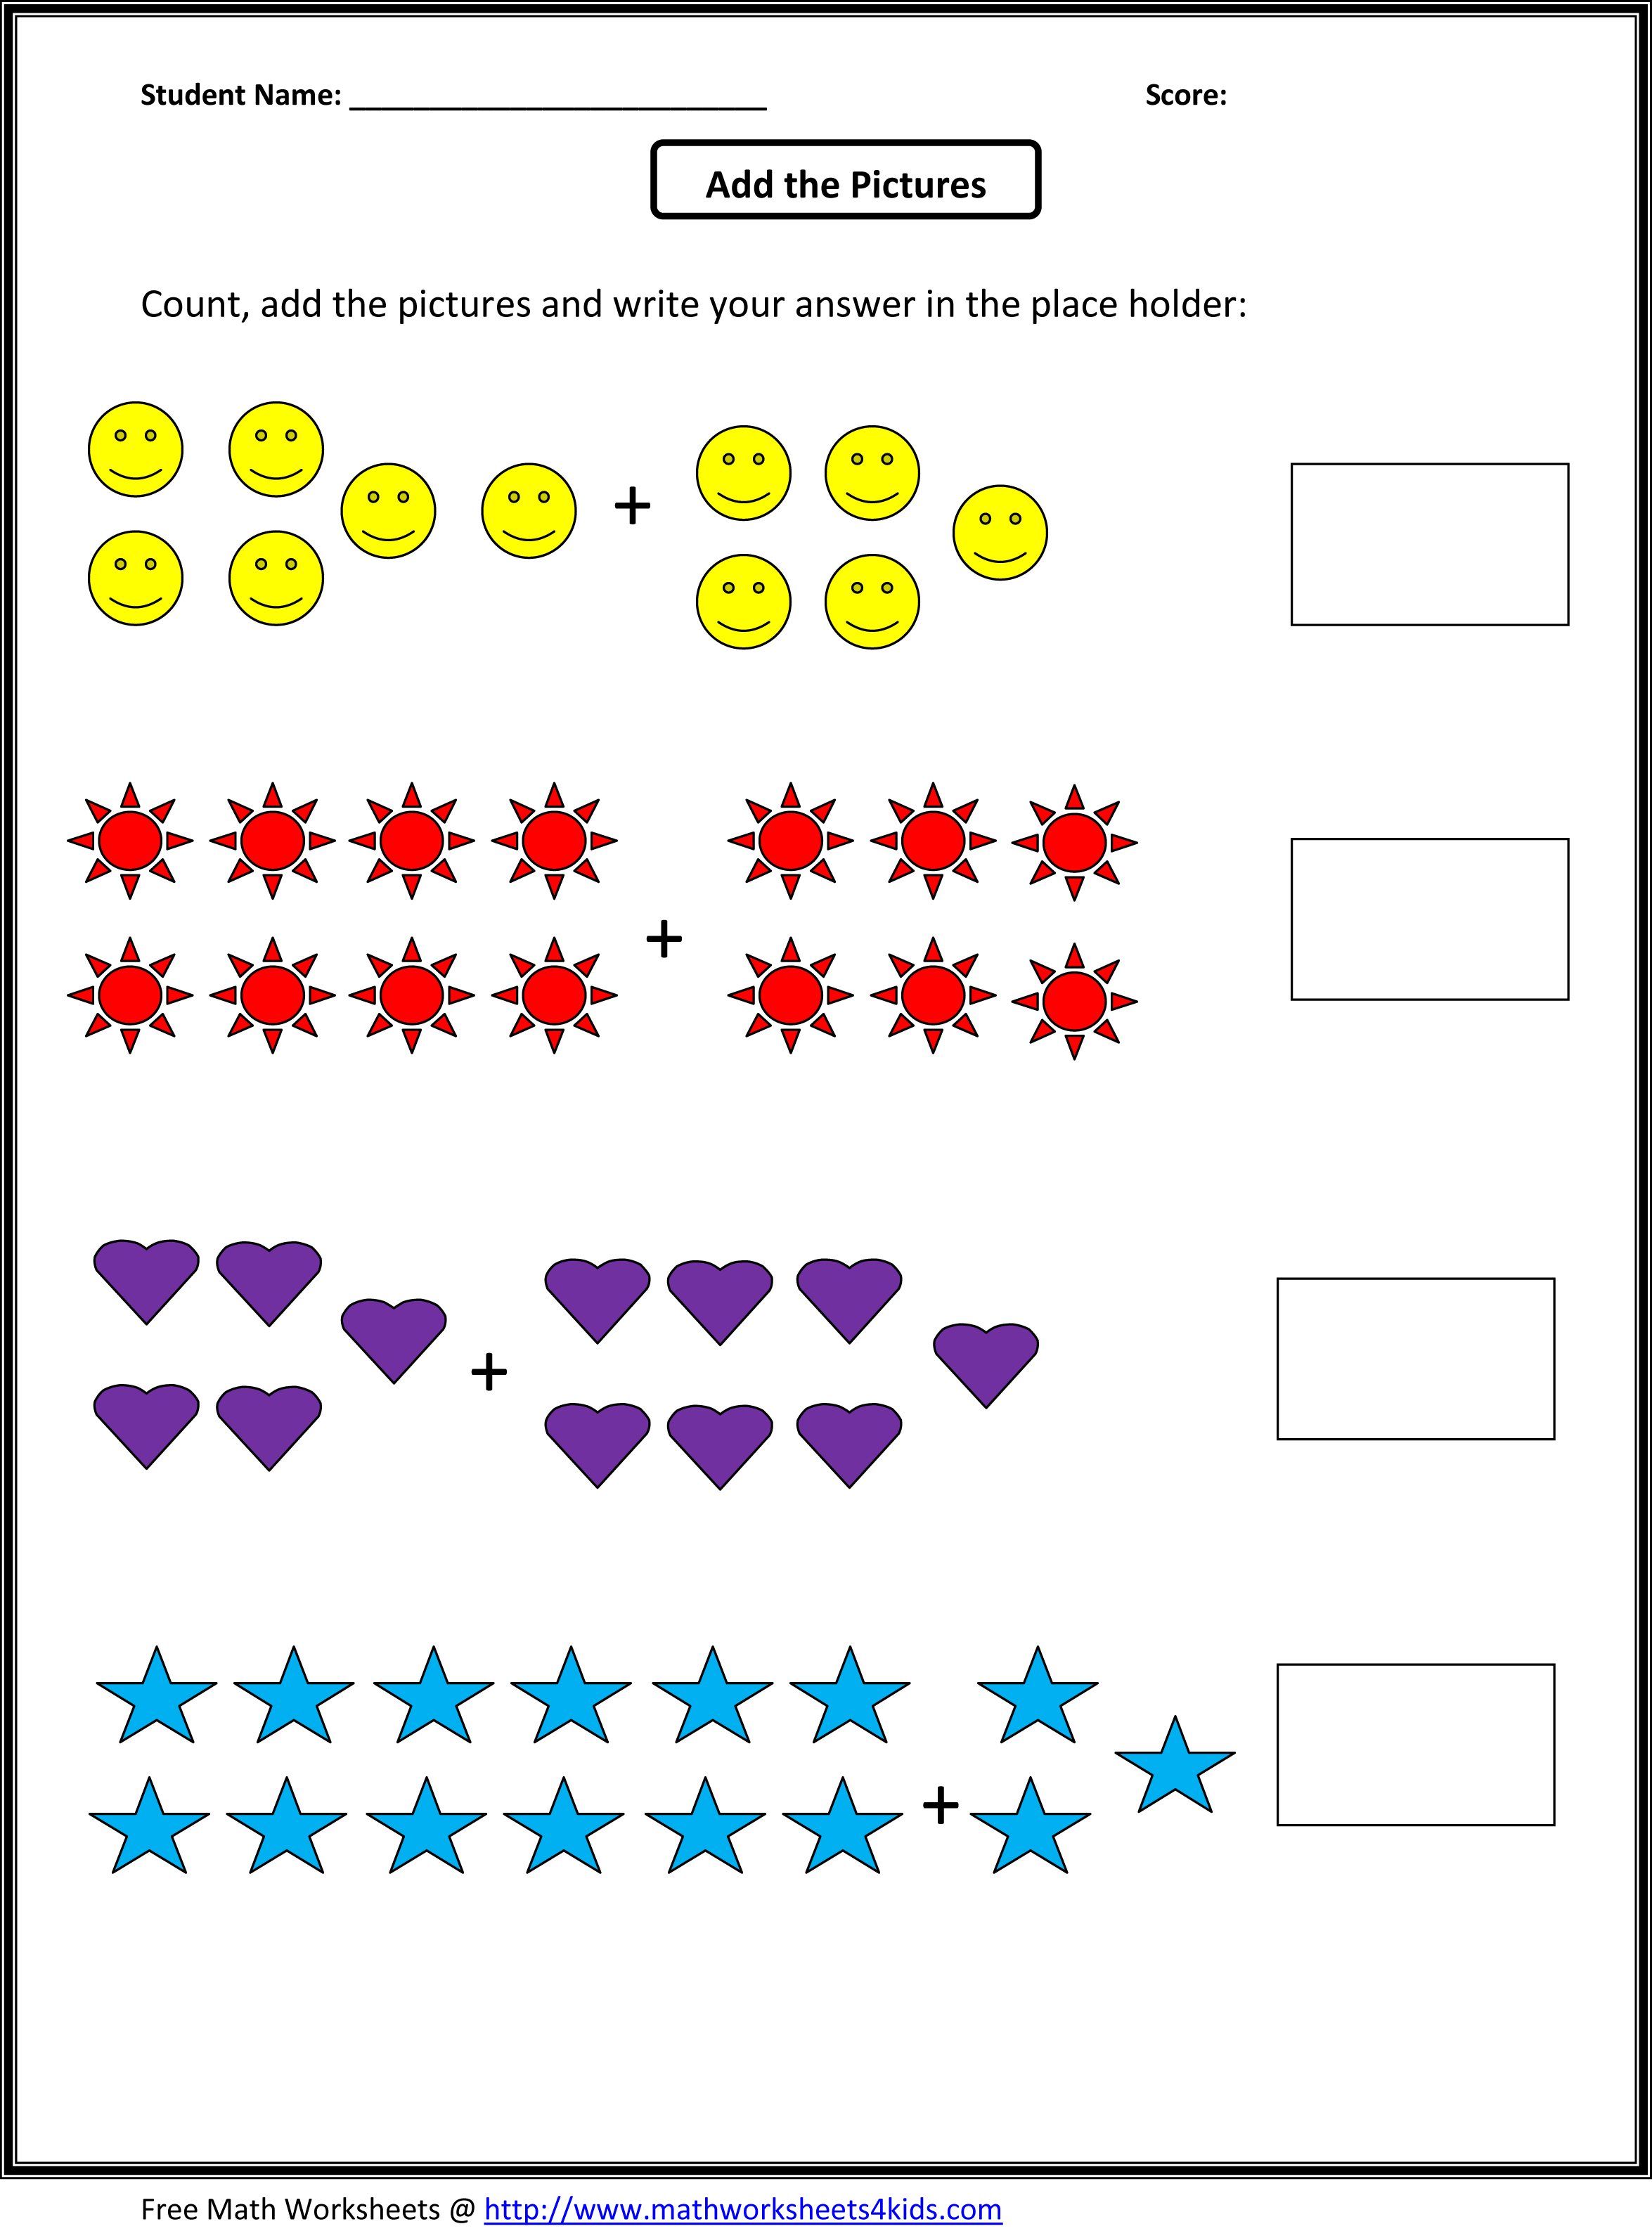 Proatmealus  Unique Grade  Maths Worksheet  Reocurent With Luxury Math Worksheets For St Grade Free  Reocurent With Attractive Spelling Worksheets For Middle School Also Classroom Objects Worksheet In Addition Lock Worksheet And Genetics Problem Worksheet As Well As Pythagoras Worksheet Additionally Spanish Beginner Worksheets From Reocurentcom With Proatmealus  Luxury Grade  Maths Worksheet  Reocurent With Attractive Math Worksheets For St Grade Free  Reocurent And Unique Spelling Worksheets For Middle School Also Classroom Objects Worksheet In Addition Lock Worksheet From Reocurentcom